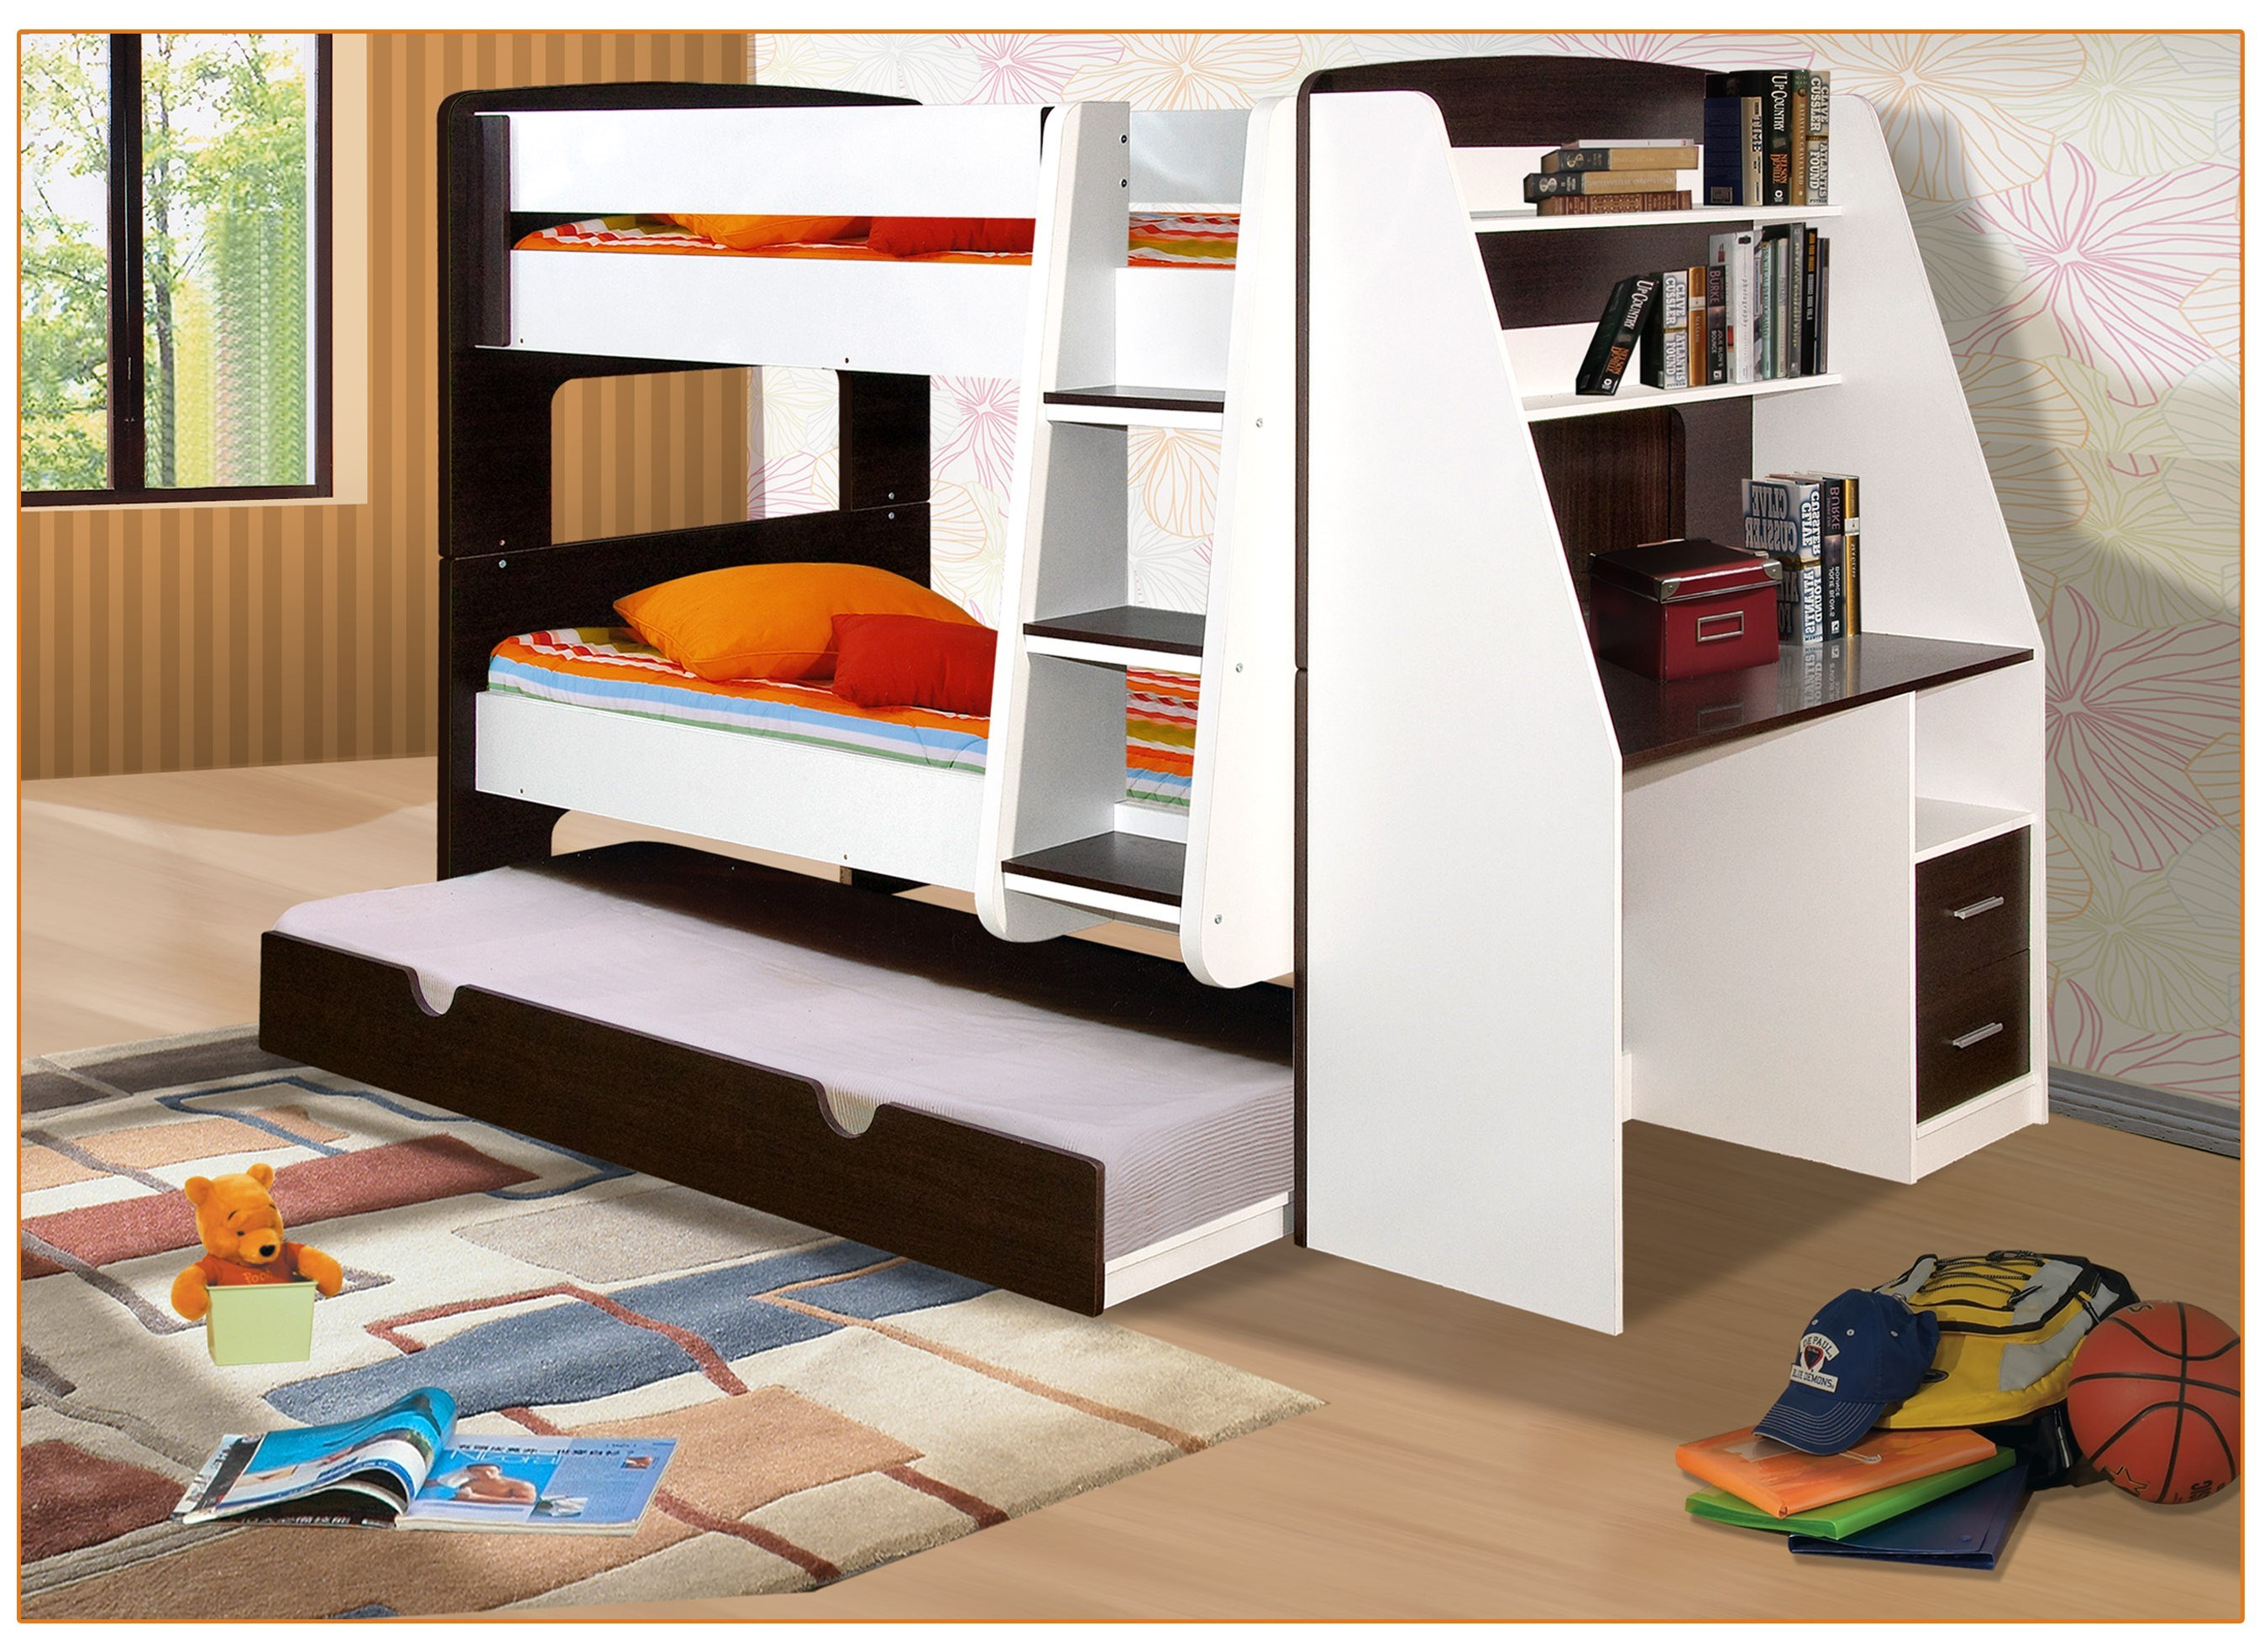 California single bunk beds with trundle bed and desk for Bunk bed with desk